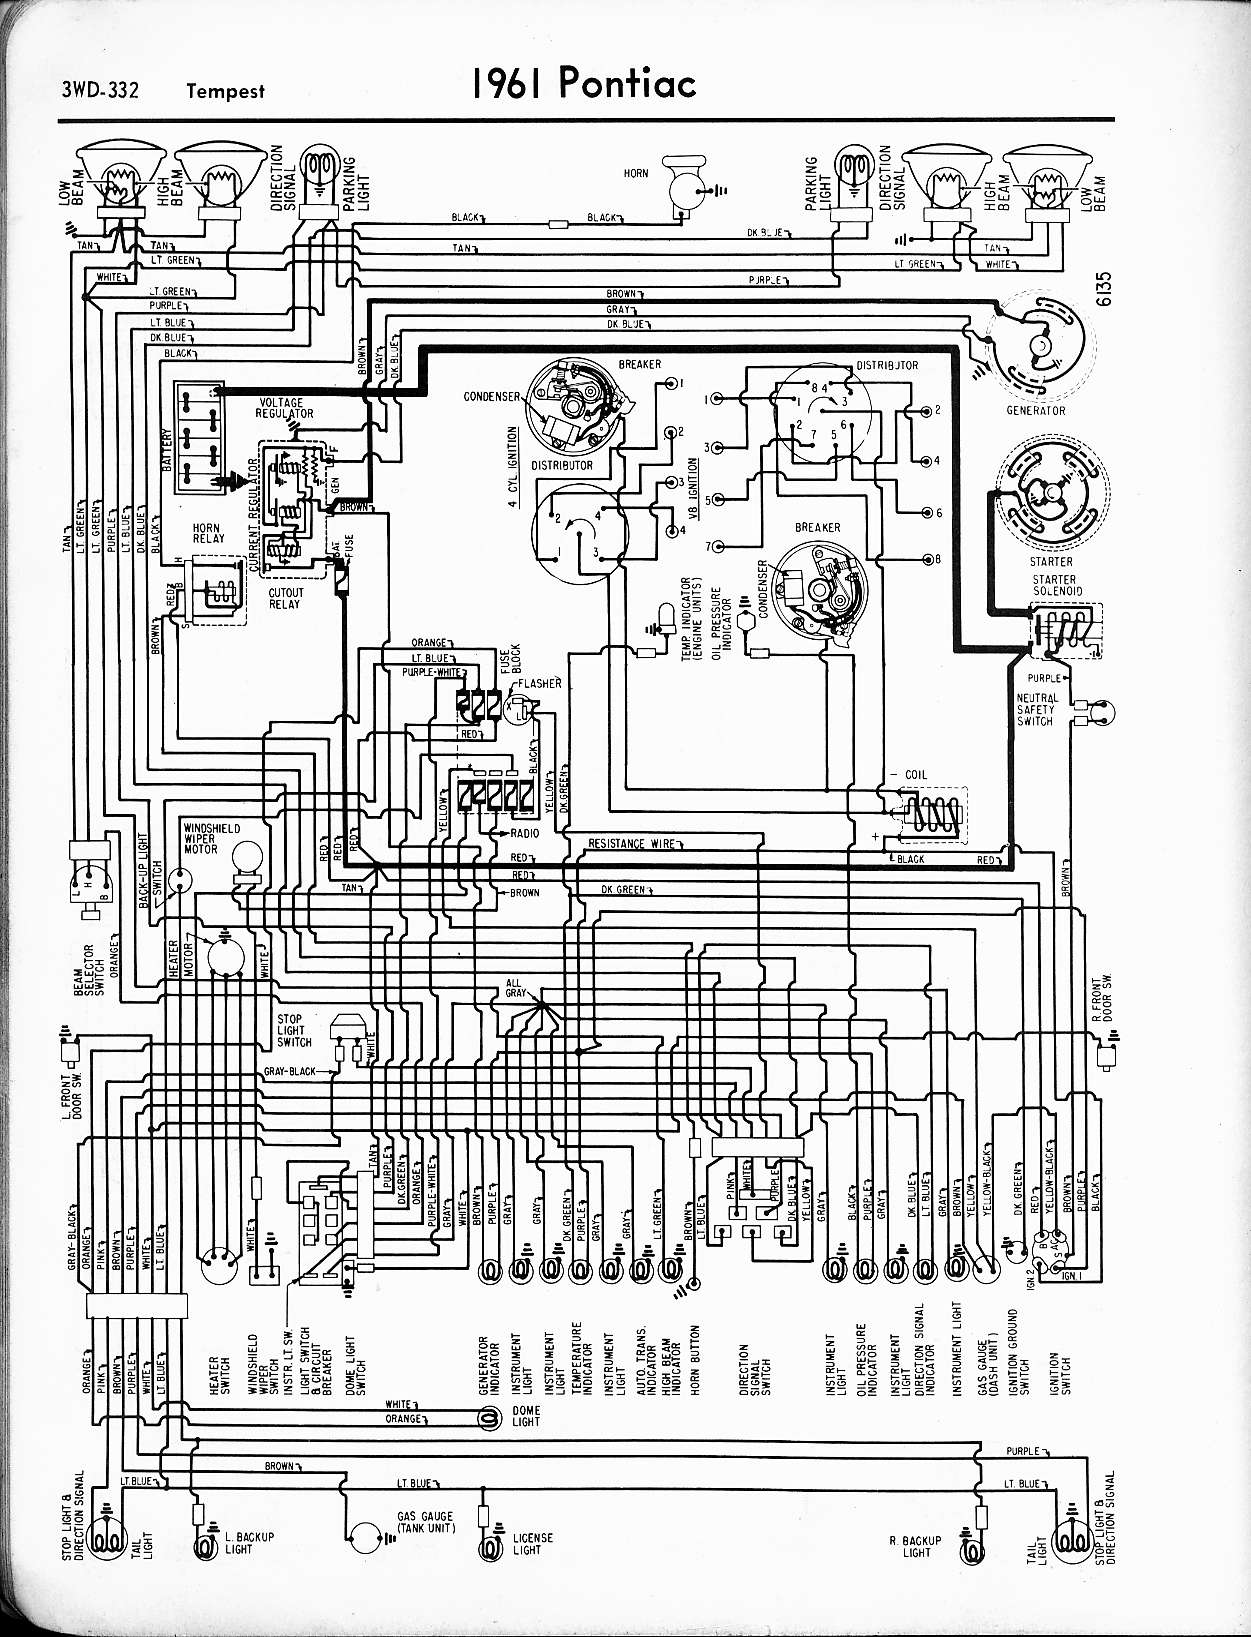 1966 corvair engine diagram wiring diagram 1965 corvair wiring diagram click image for large version wiring1966 pontiac wiring diagram data wiring diagram